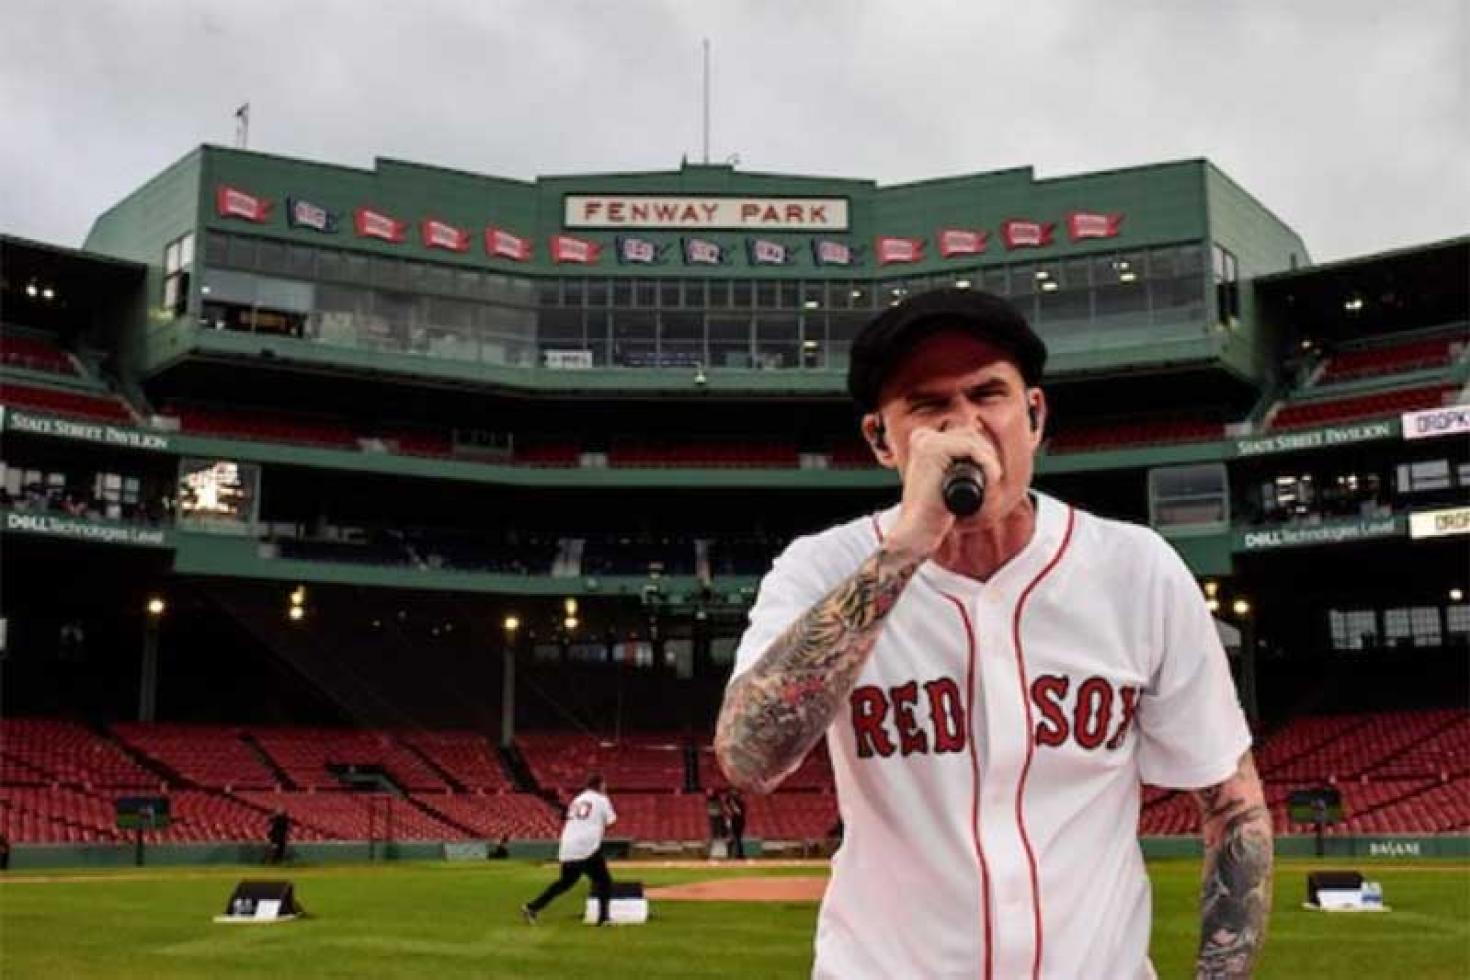 Dropkick Murphys raised over $700,000 for charity with 'Streaming Outta Fenway'